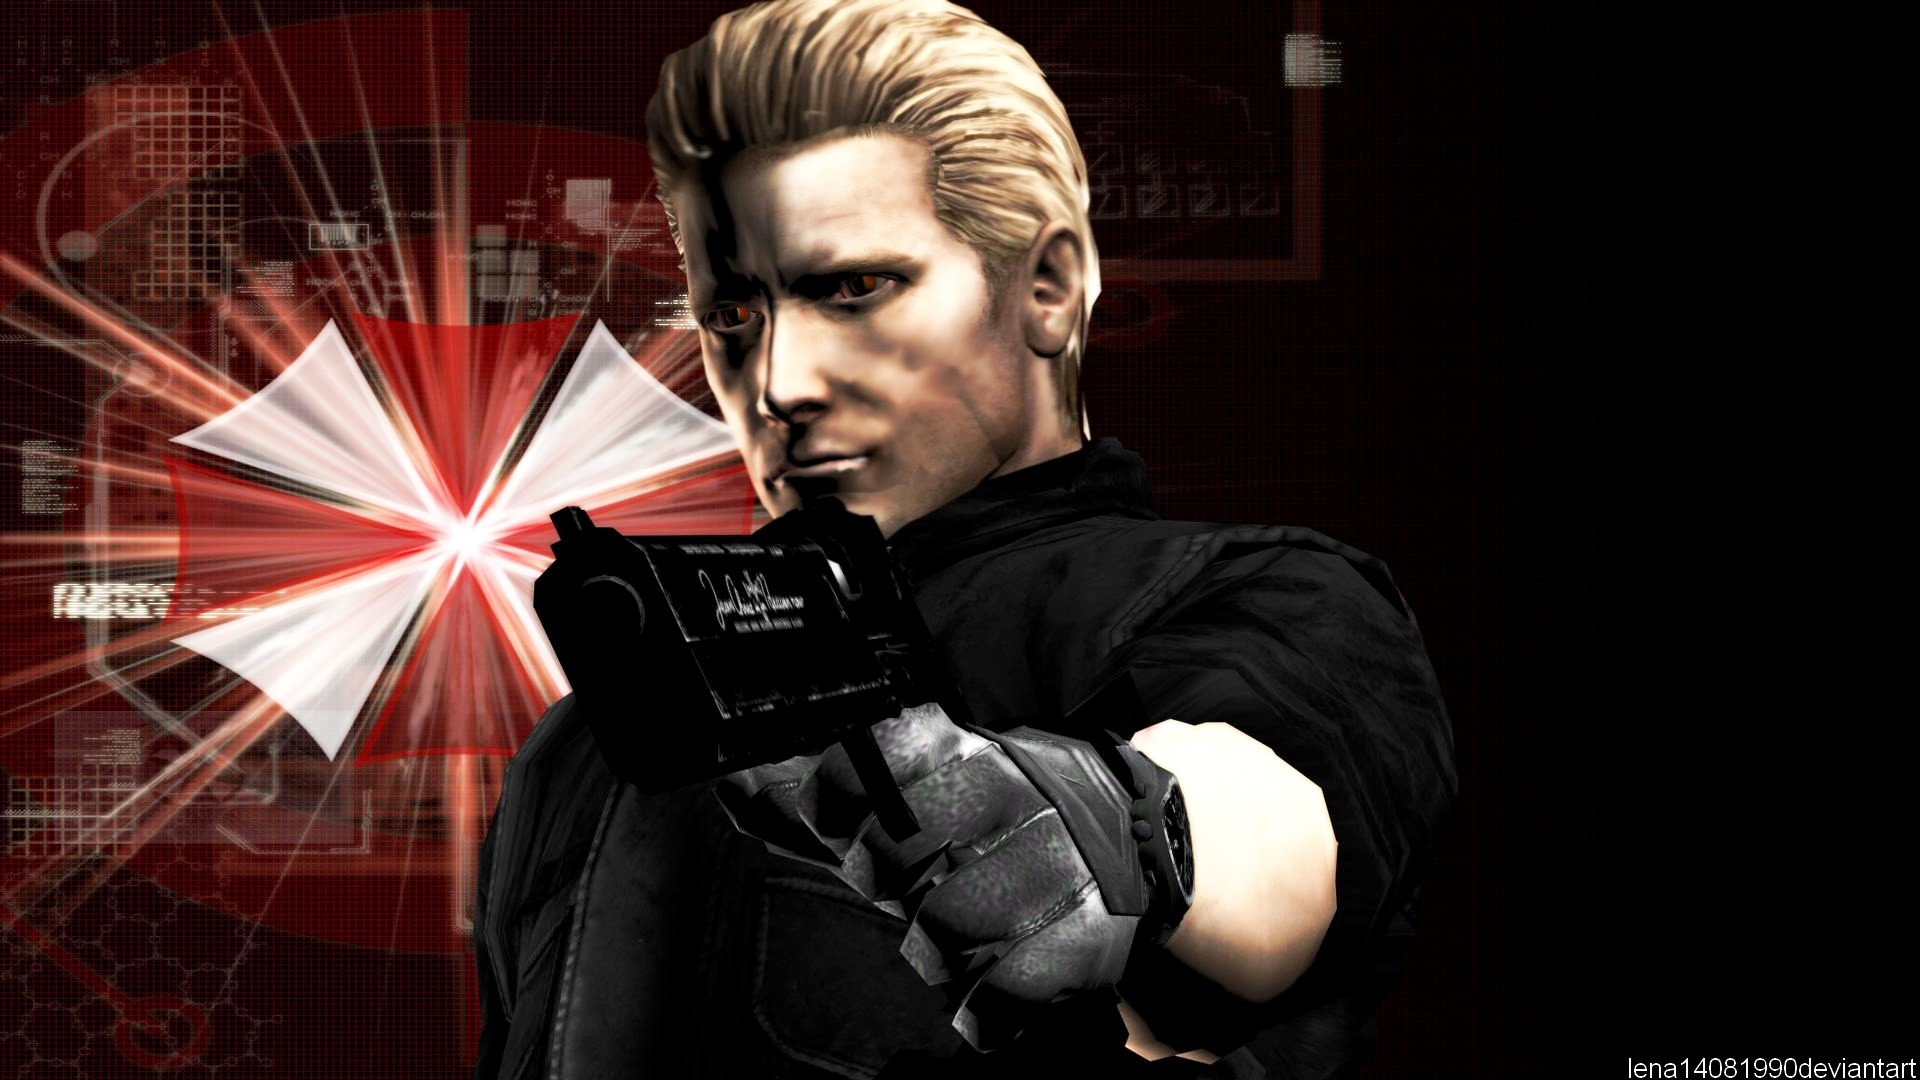 Res: 1920x1080, Albert Wesker images Wesker HD wallpaper and background photos